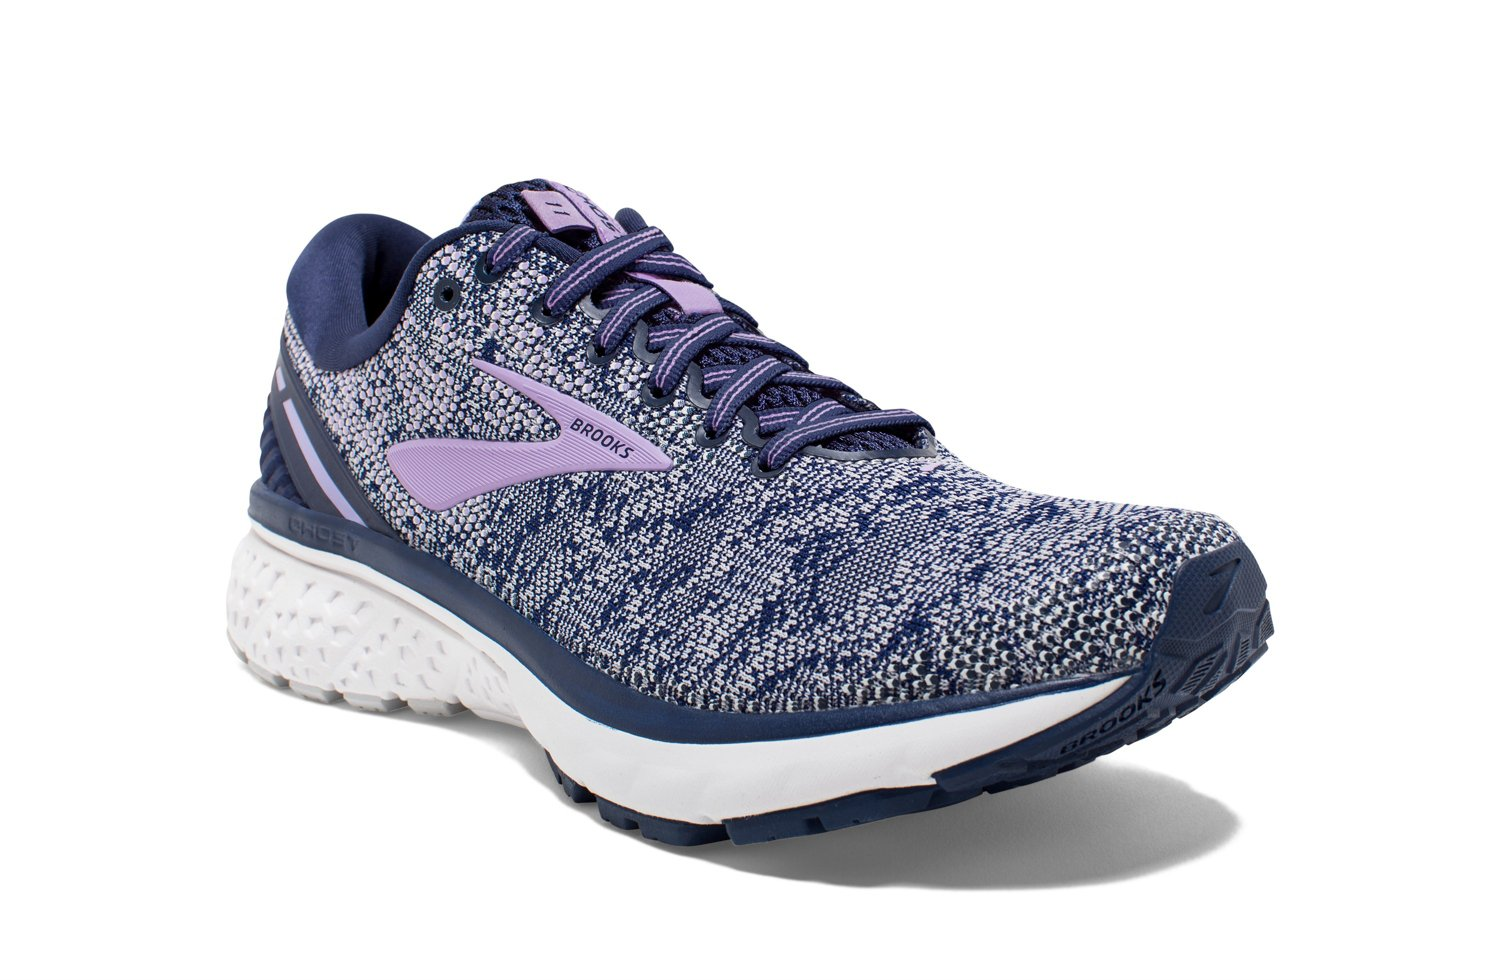 0be5984b263 Brooks Women s Ghost 11 Running Shoes